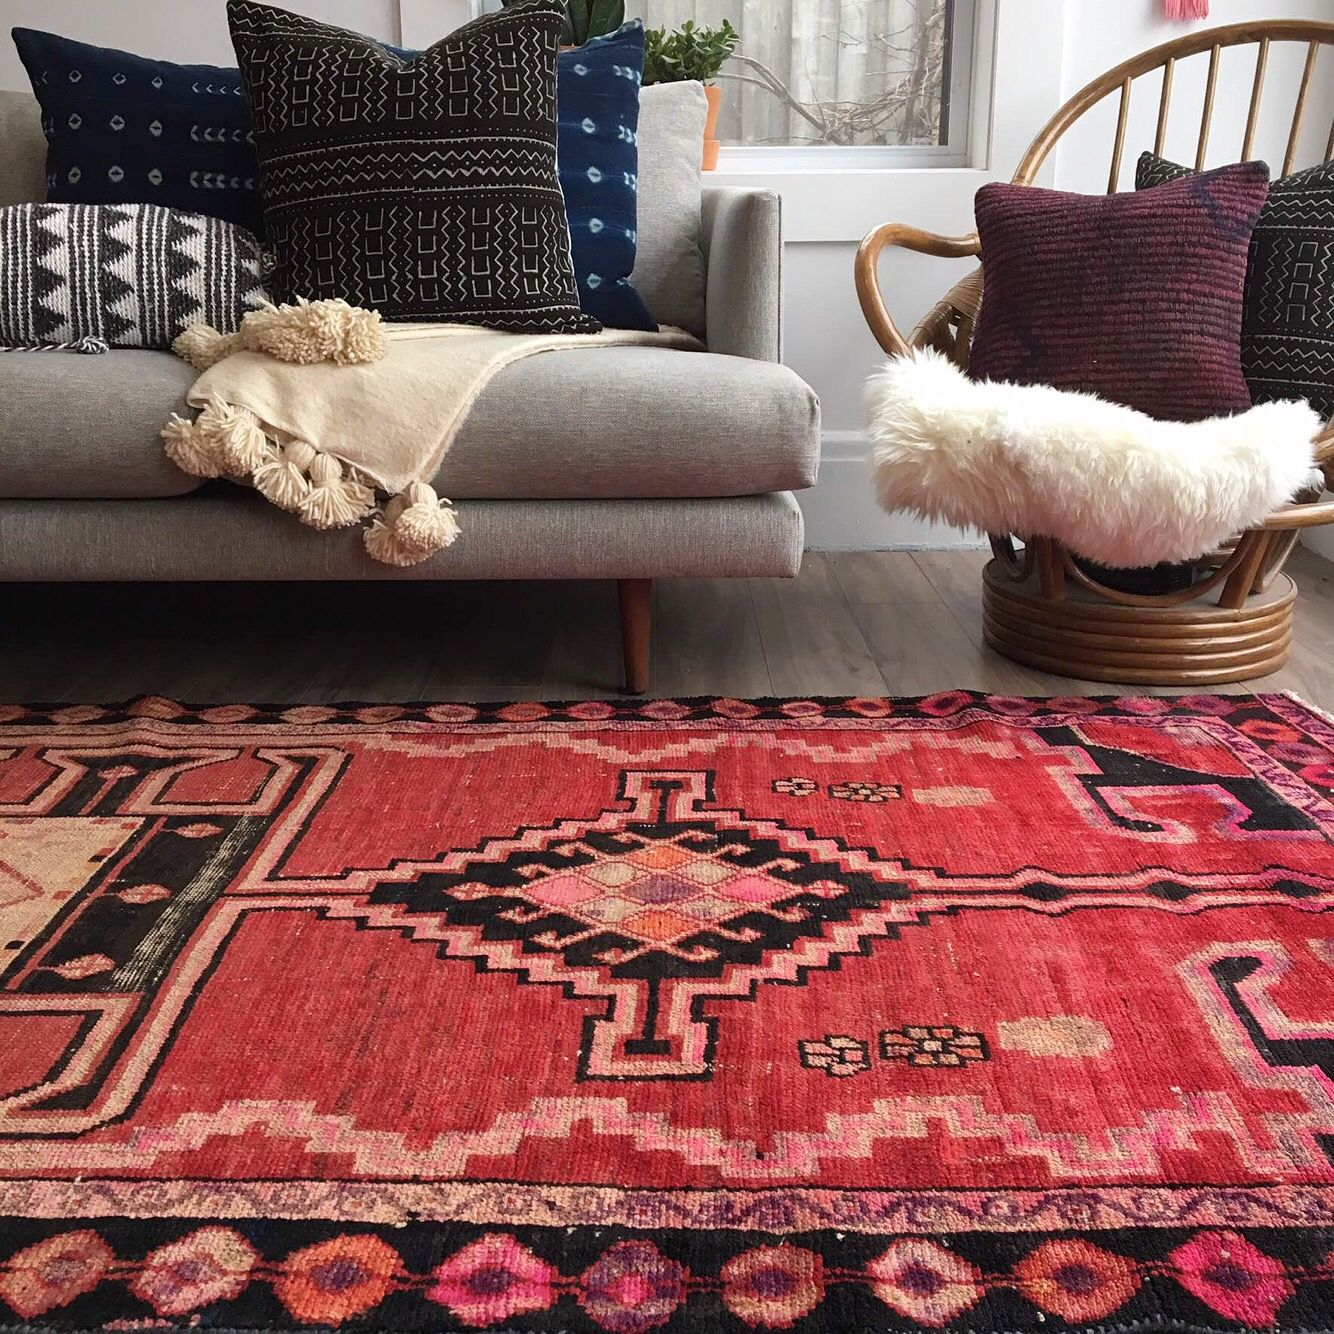 Vintage Persian Rug African Mud Cloth Pilllows